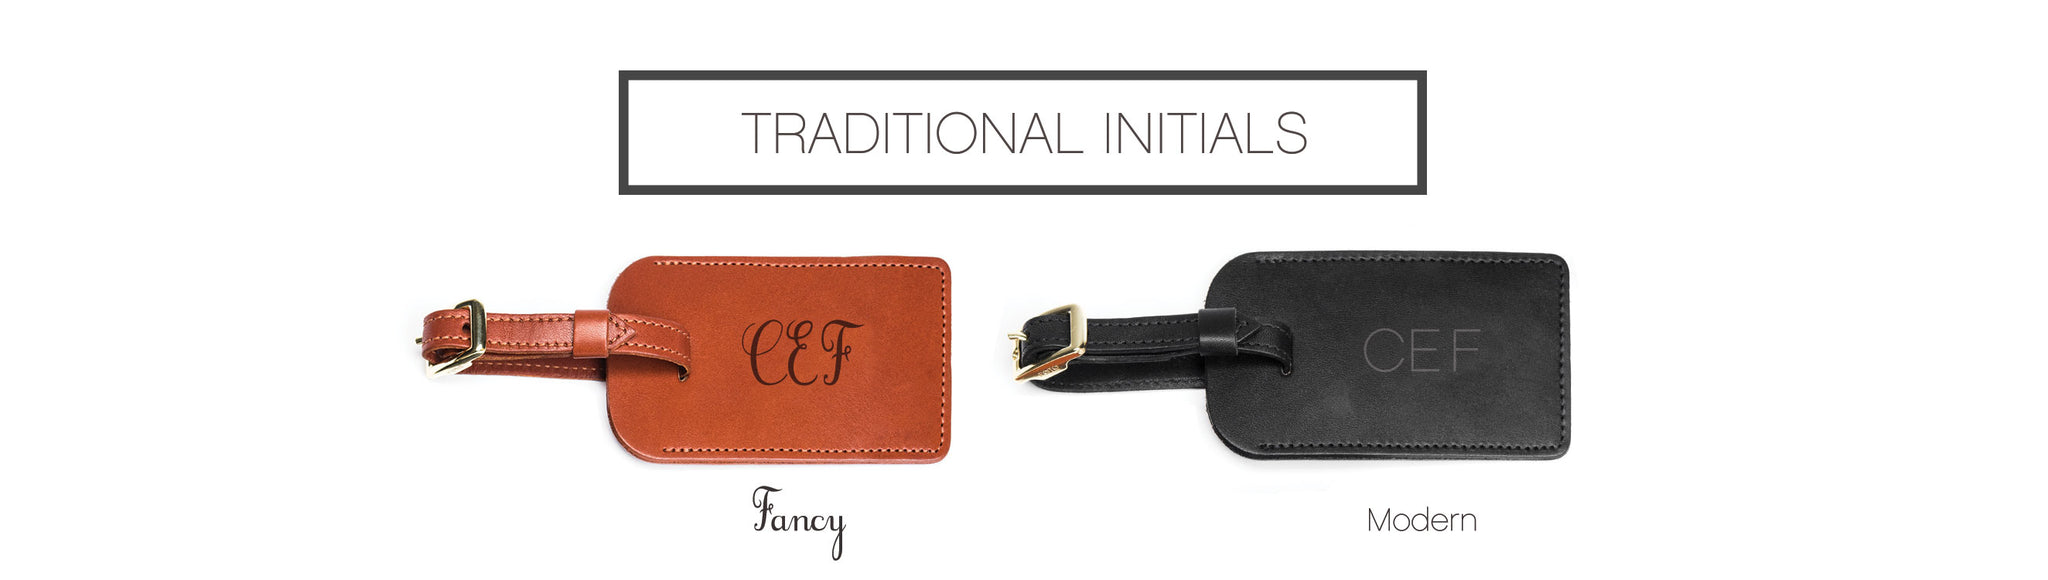 Traditional Initials - Luggage Tag